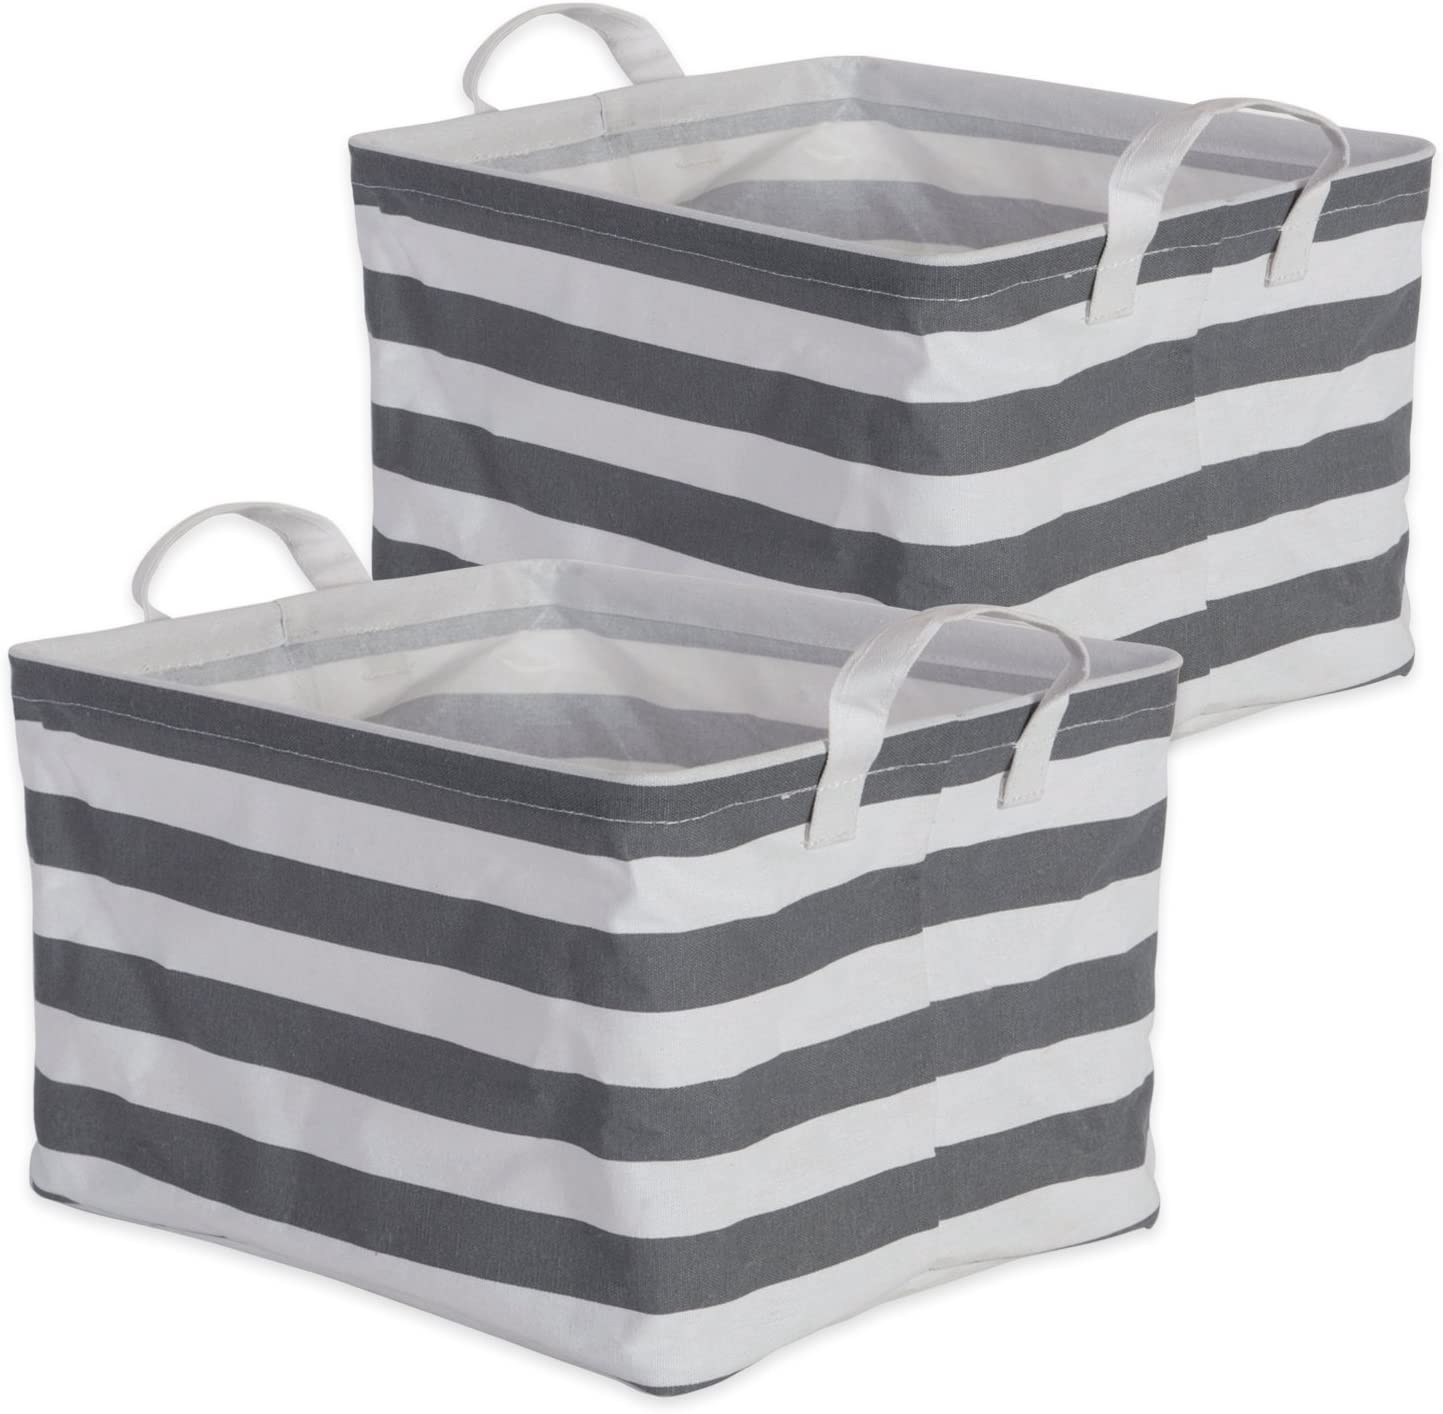 """DII Cotton/Polyester Cube Laundry Basket, Perfect In Your Bedroom, Nursery, Dorm, Closet, 10.5 x 13 x 8.5"""", Medium Set of 2 - Gray Rugby Stripe"""